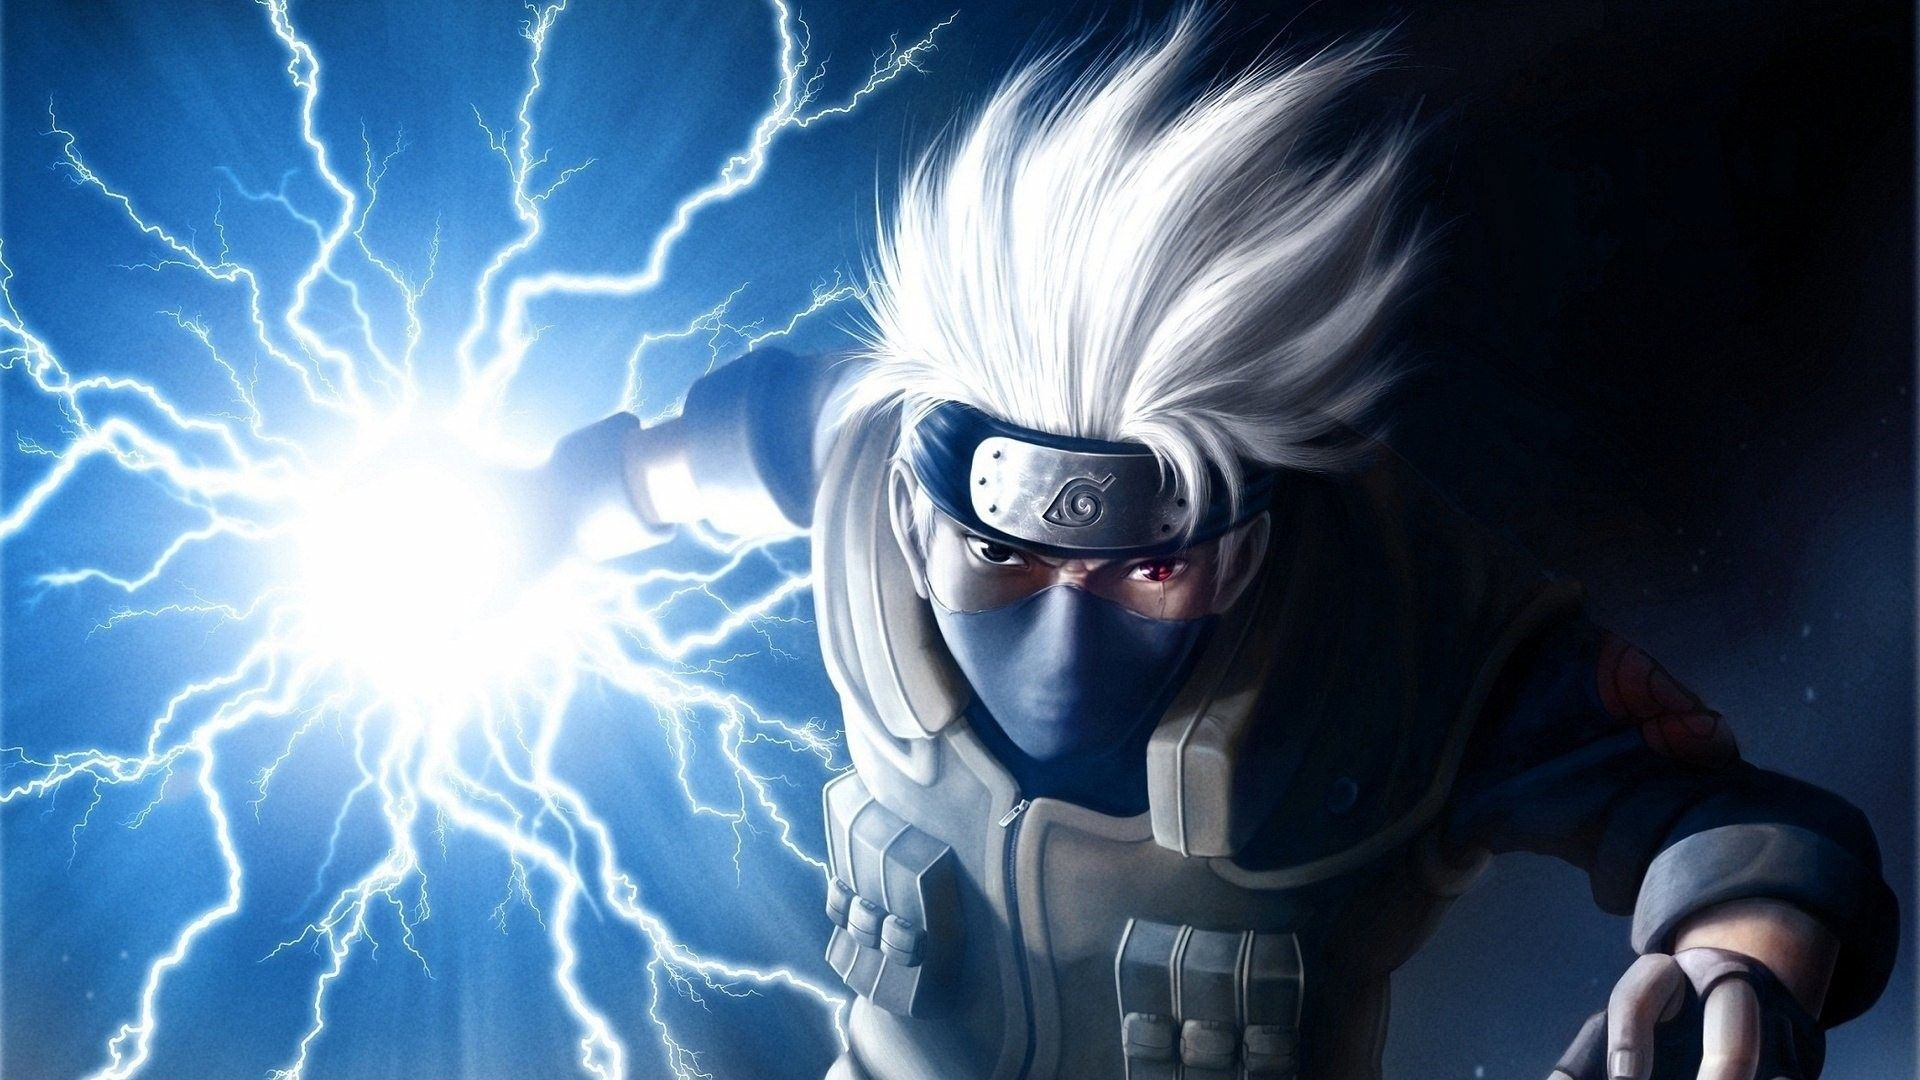 Kakashi Chidori In 2020 Cool Anime Backgrounds Naruto Kakashi Kakashi Chidori